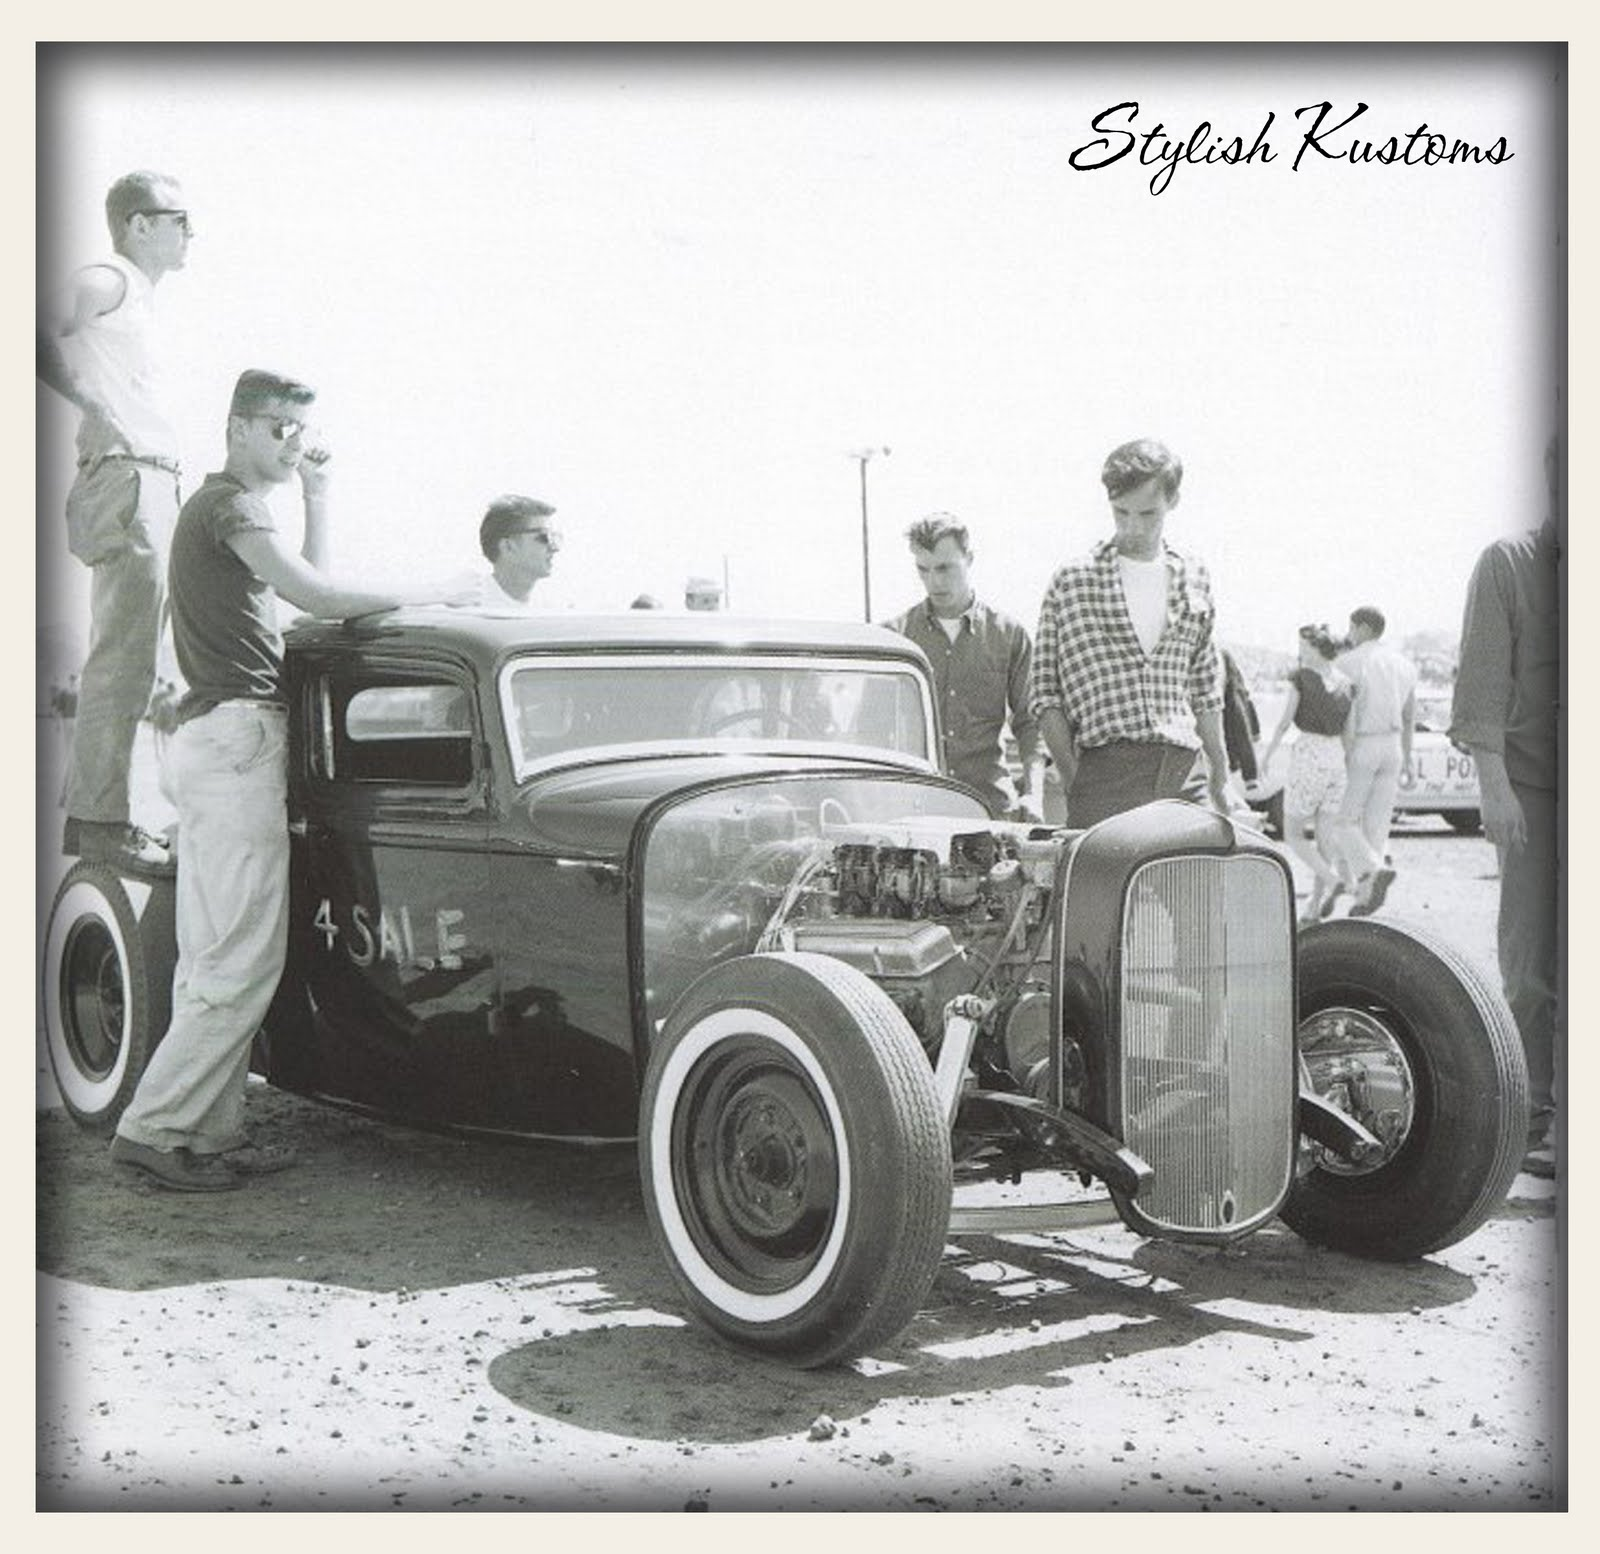 STYLISH KUSTOMS: Great Hot Rod Photos